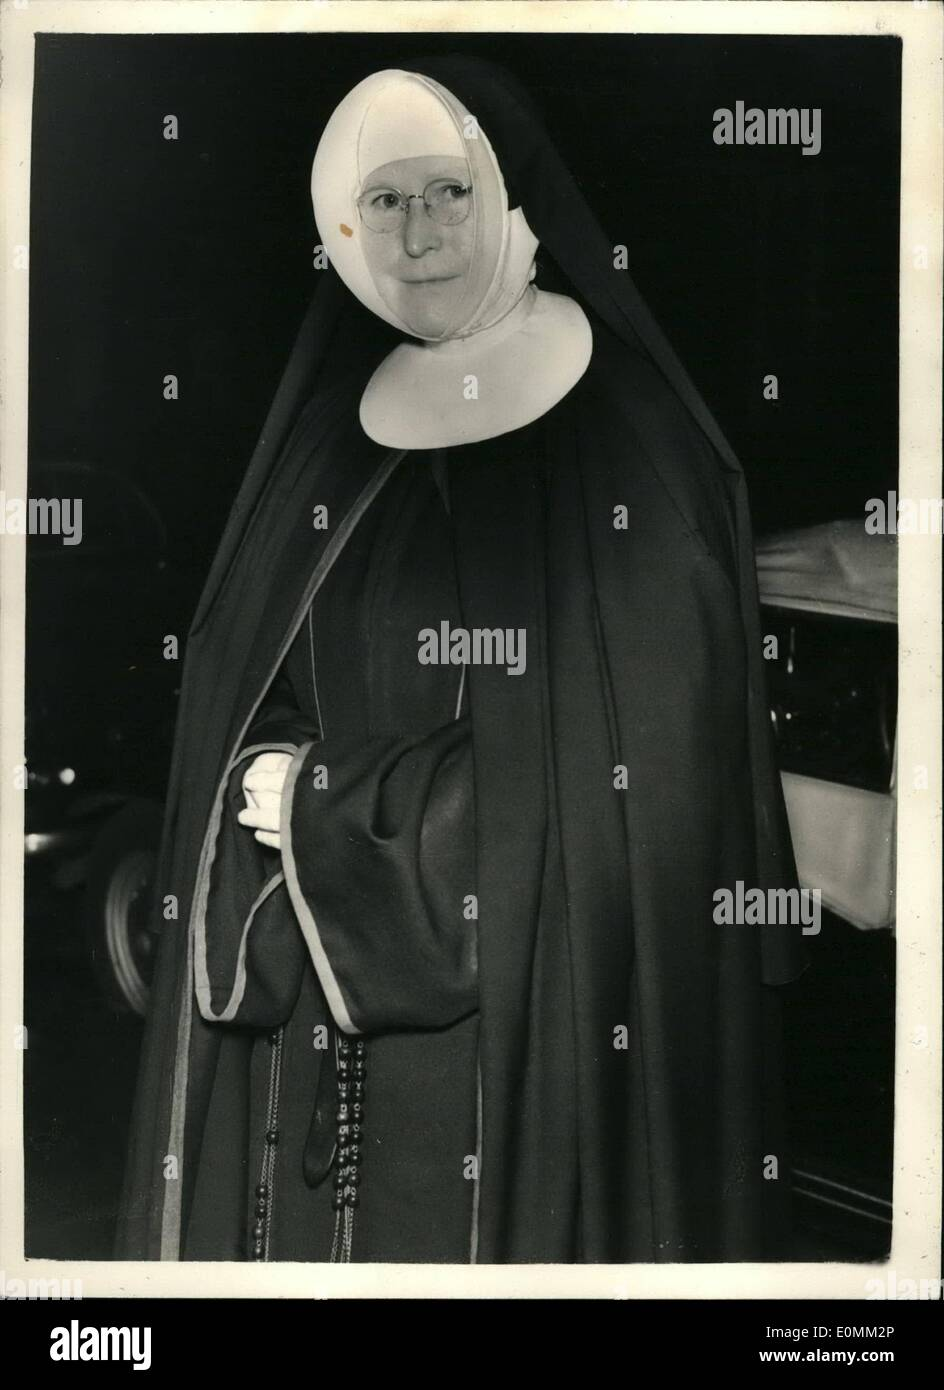 Nov. 11, 1955 - Nun Sues Cardinal Griffin And Others - Alleges False Imprisonment: Miss Margaret McCann, 54 year old Nun who became a member of the Sisters of Nazareth in 1924 - claimed damages in the Queen's Bench alleging false imprisonment - saying that she was looked up in a mental home when there was no justification for suggesting that she had an unsoundness of mind. Included in those accused is Cardinal Griffin - Archbishop of Westminster and Mother Plascidus - Superior of the Order of the sisters of Nazareth - Stock Image